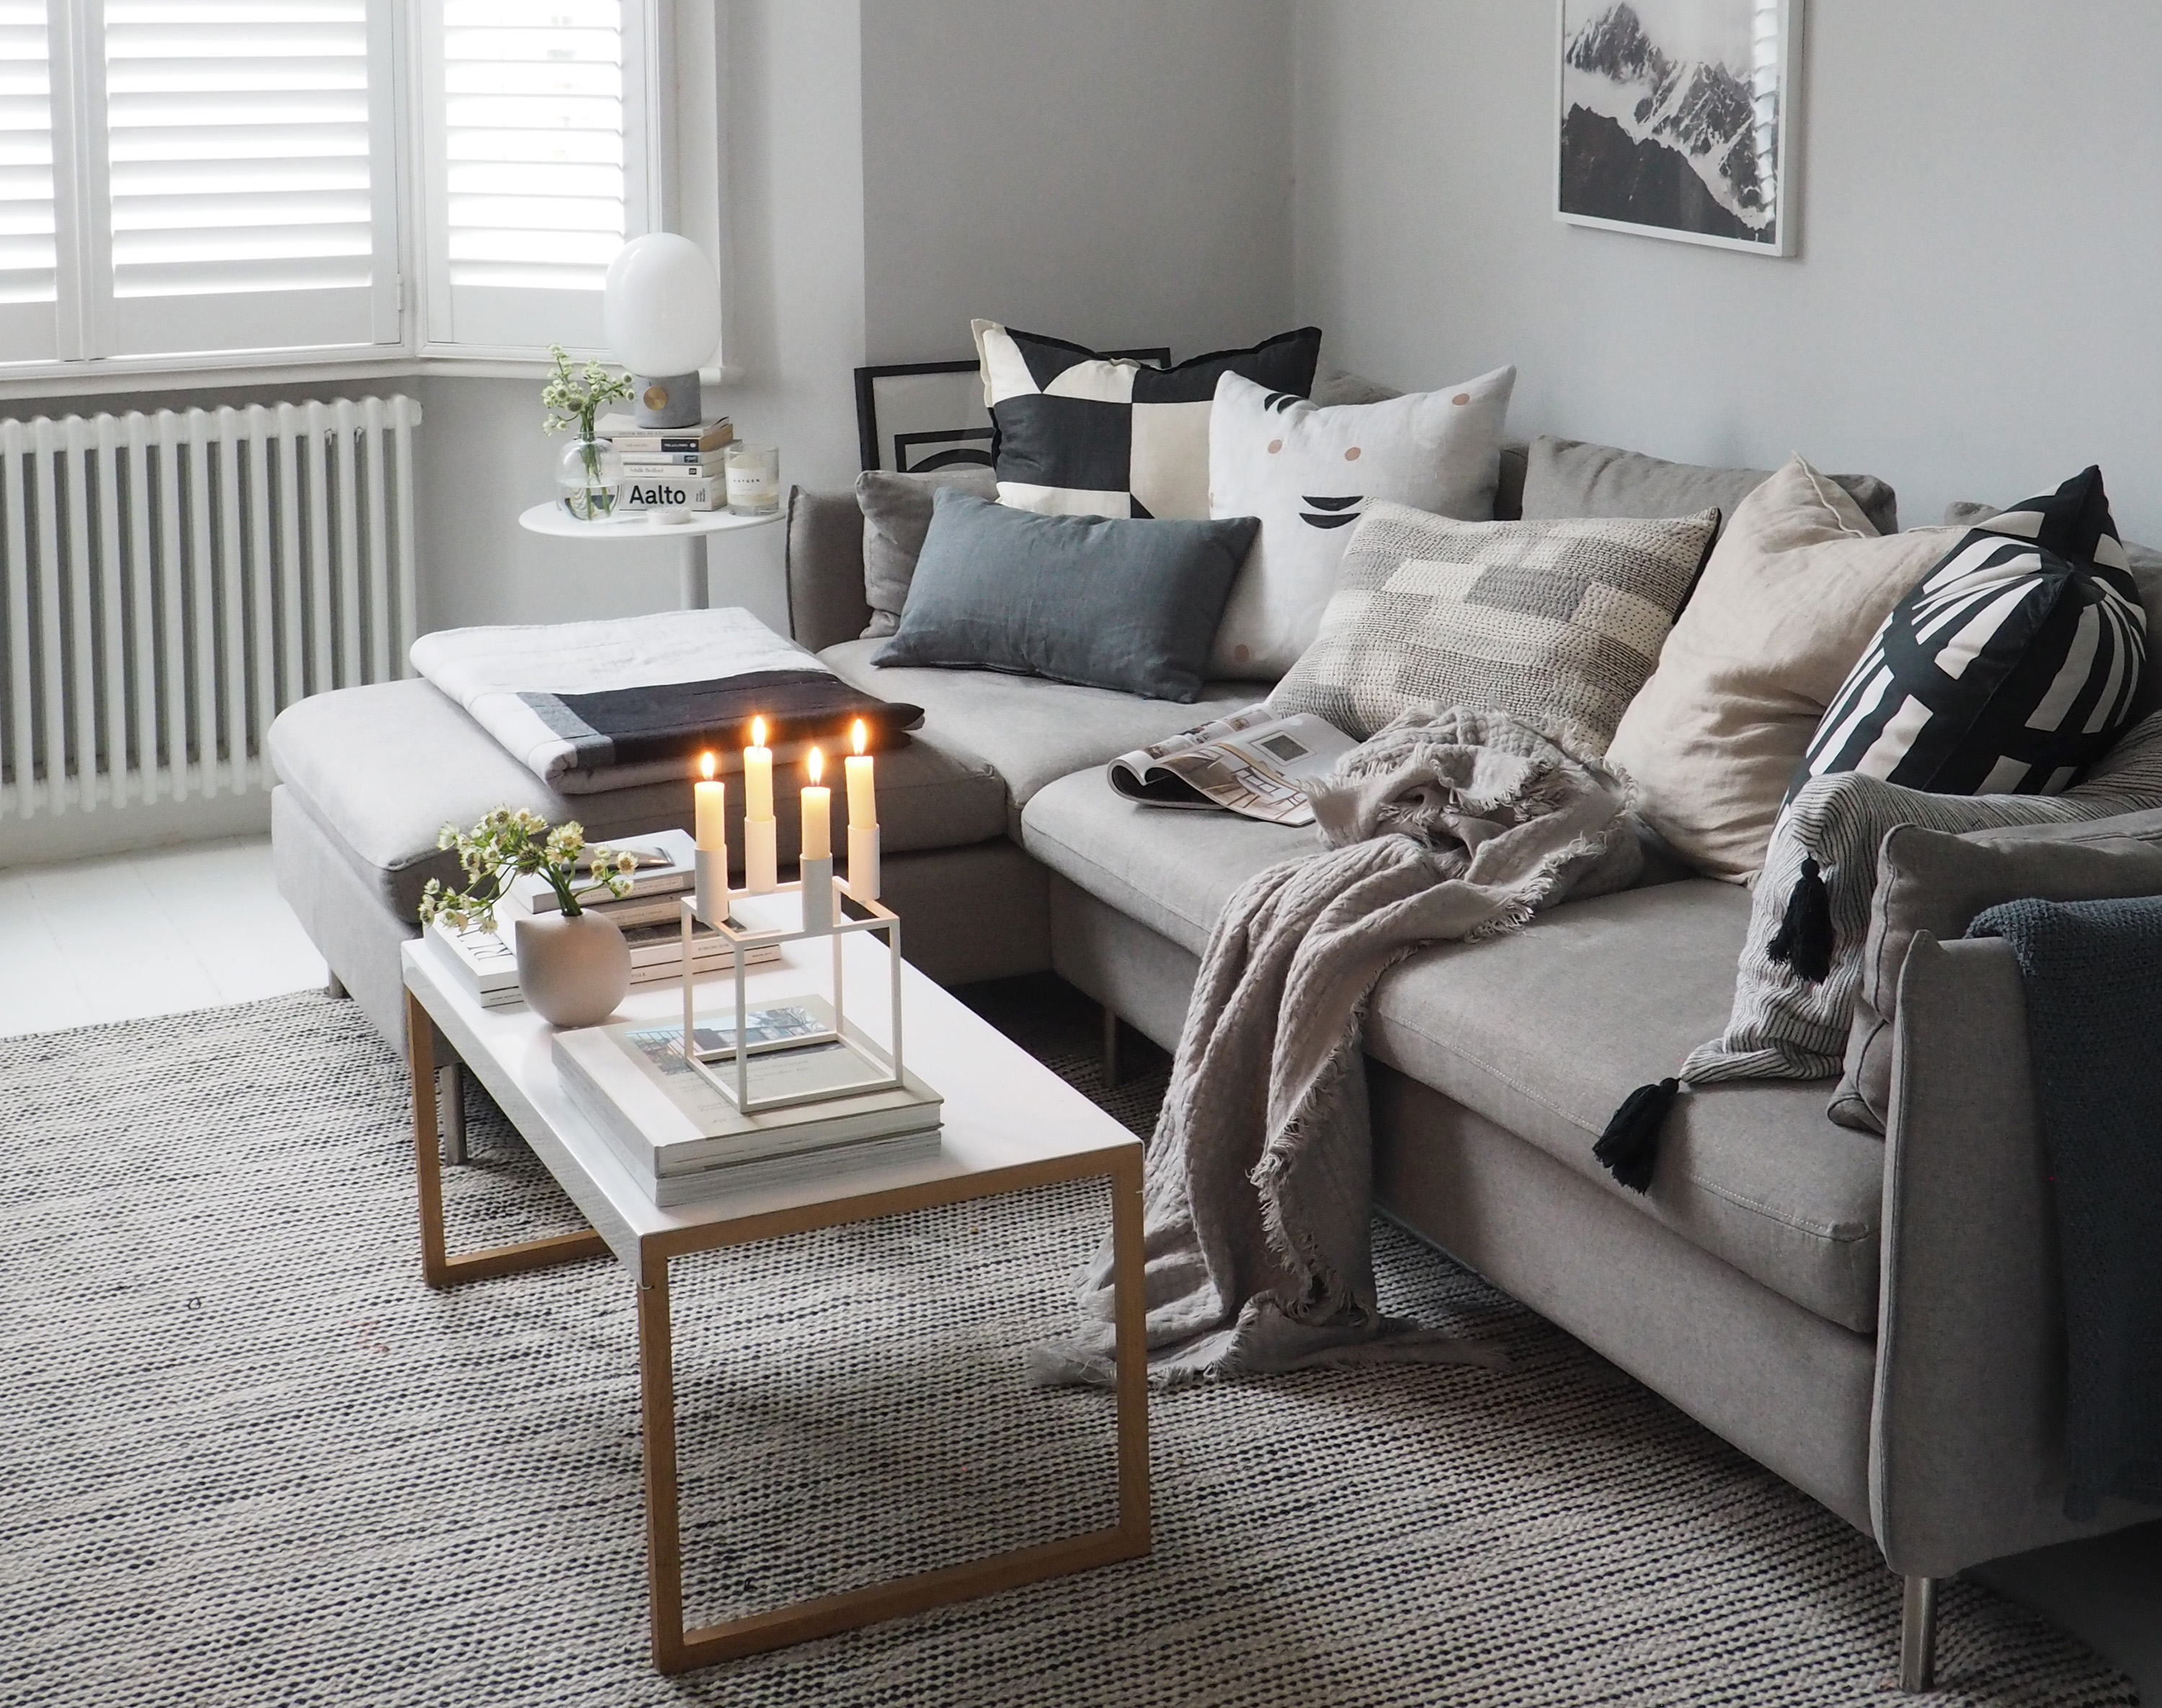 8 Steps To Making Your Living Room Feel Cosy Catesthill Com